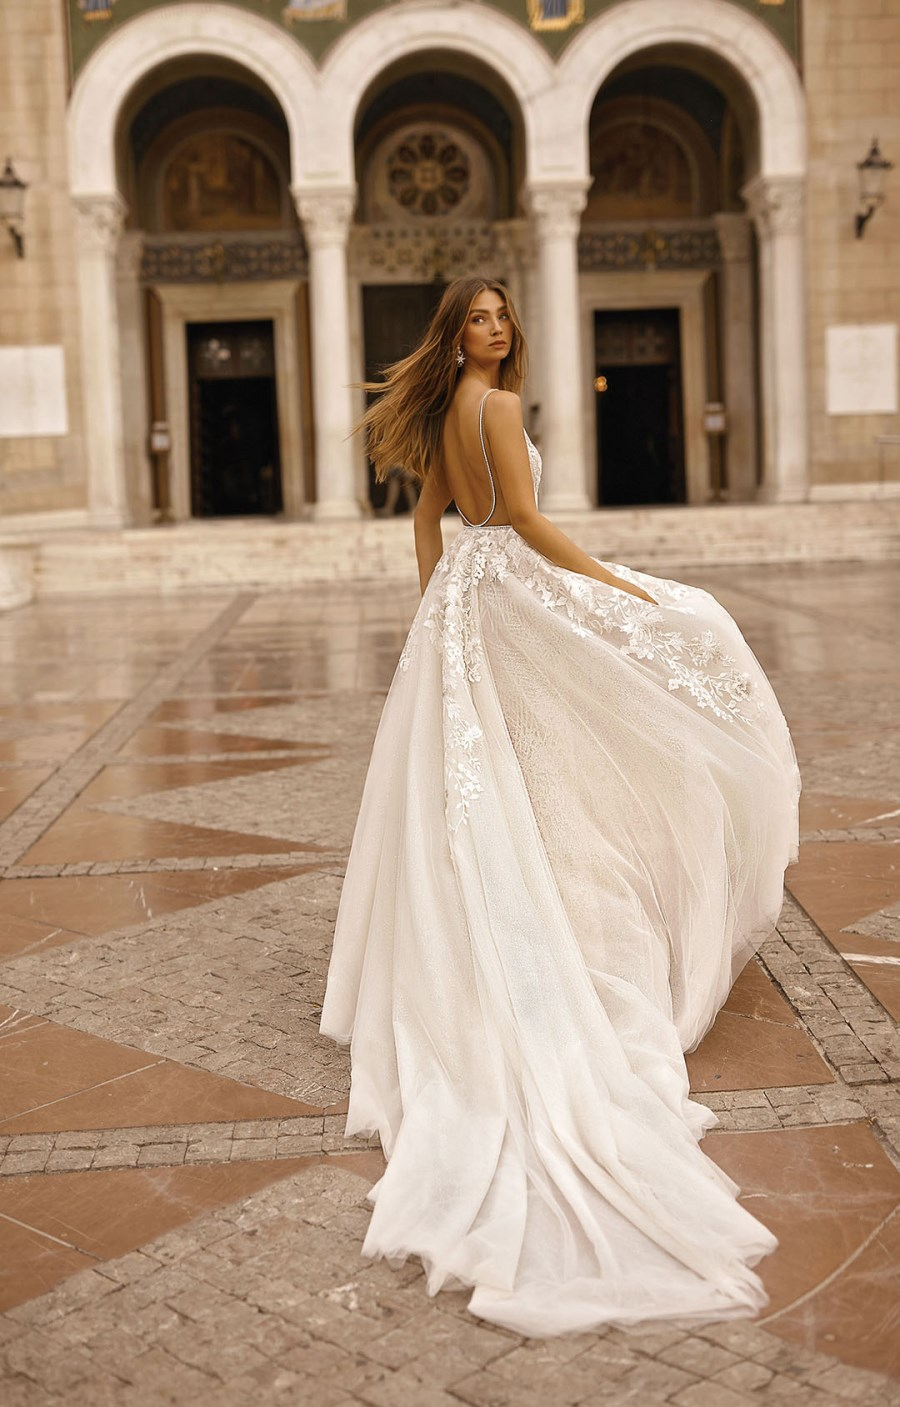 berta-wedding-dress-2019-1 (15)_2